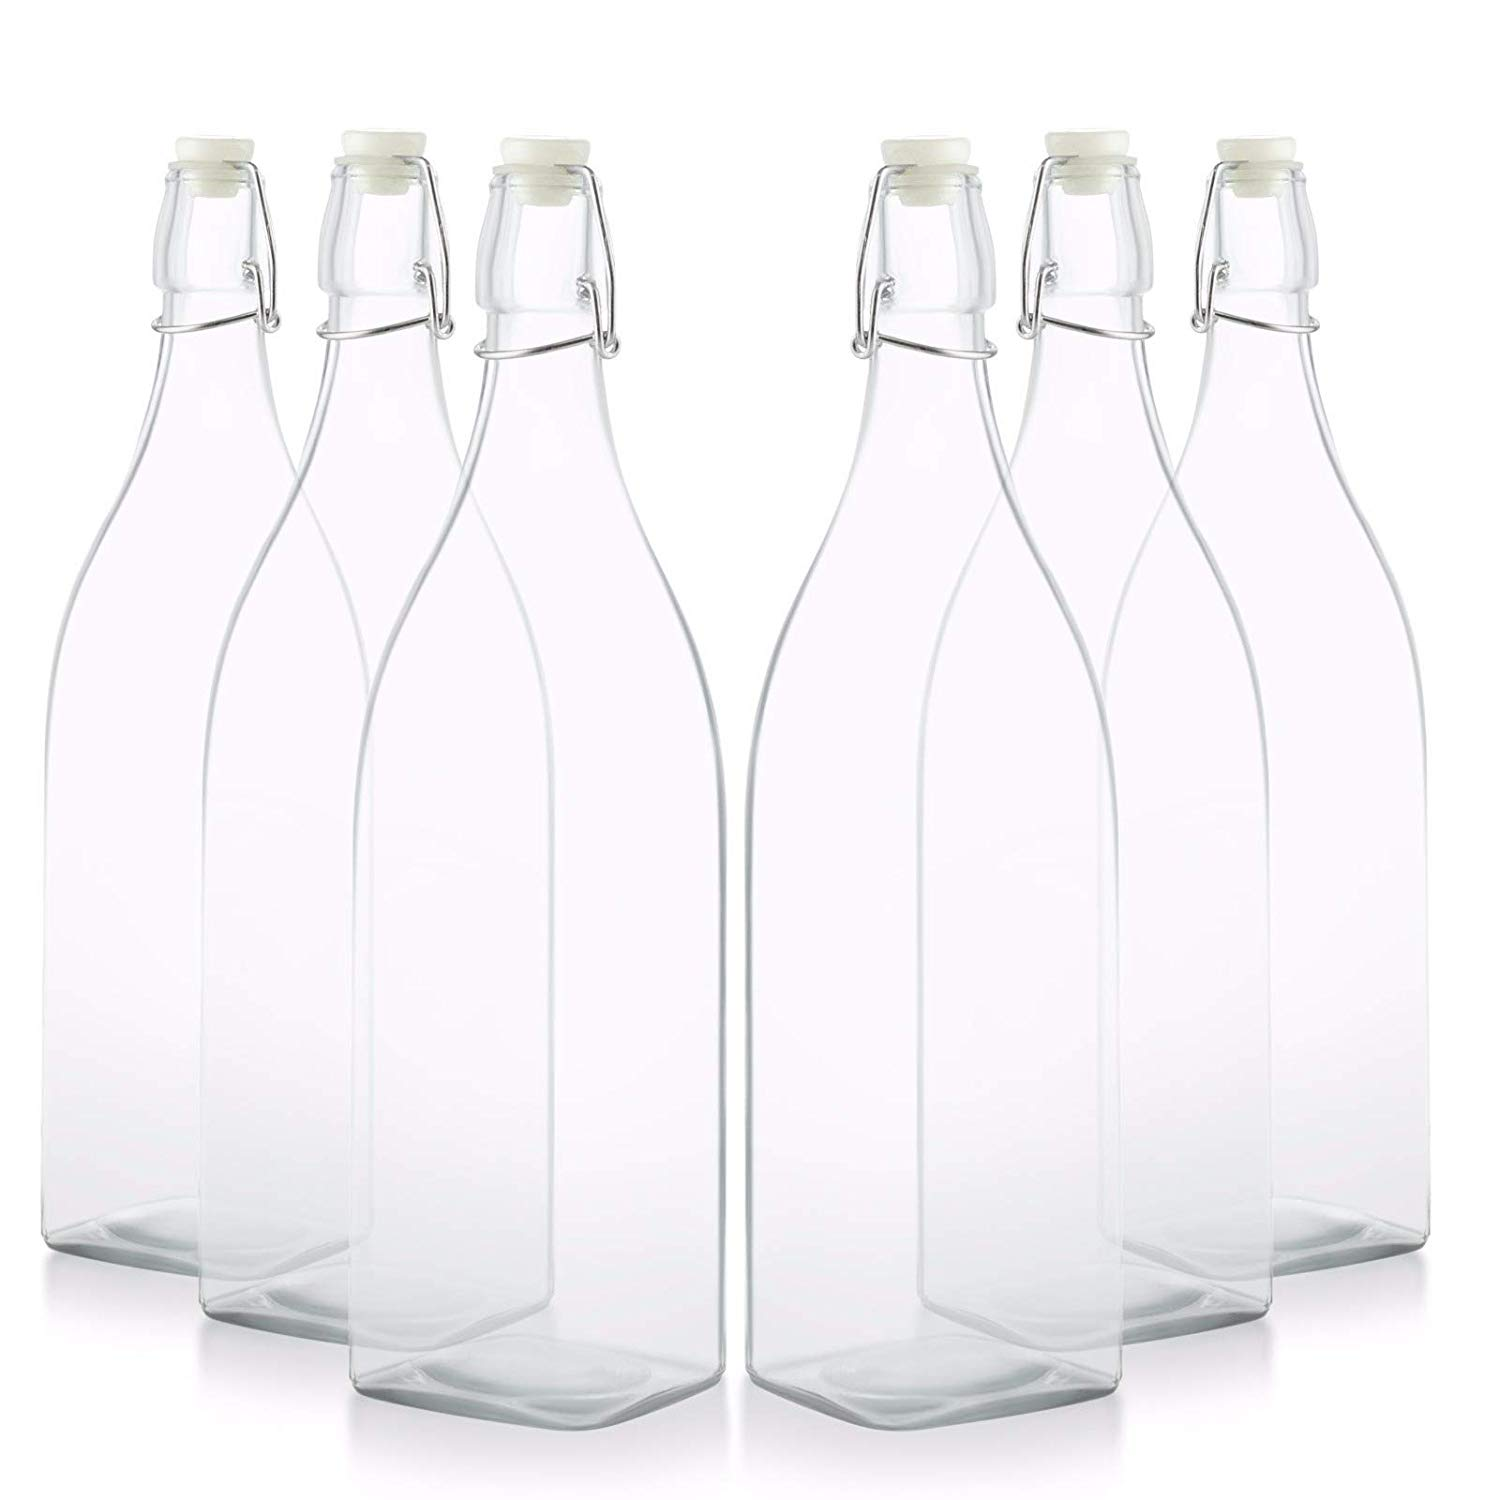 bcb1a139c8ba Cheap Glass Bottles French Square, find Glass Bottles French Square ...